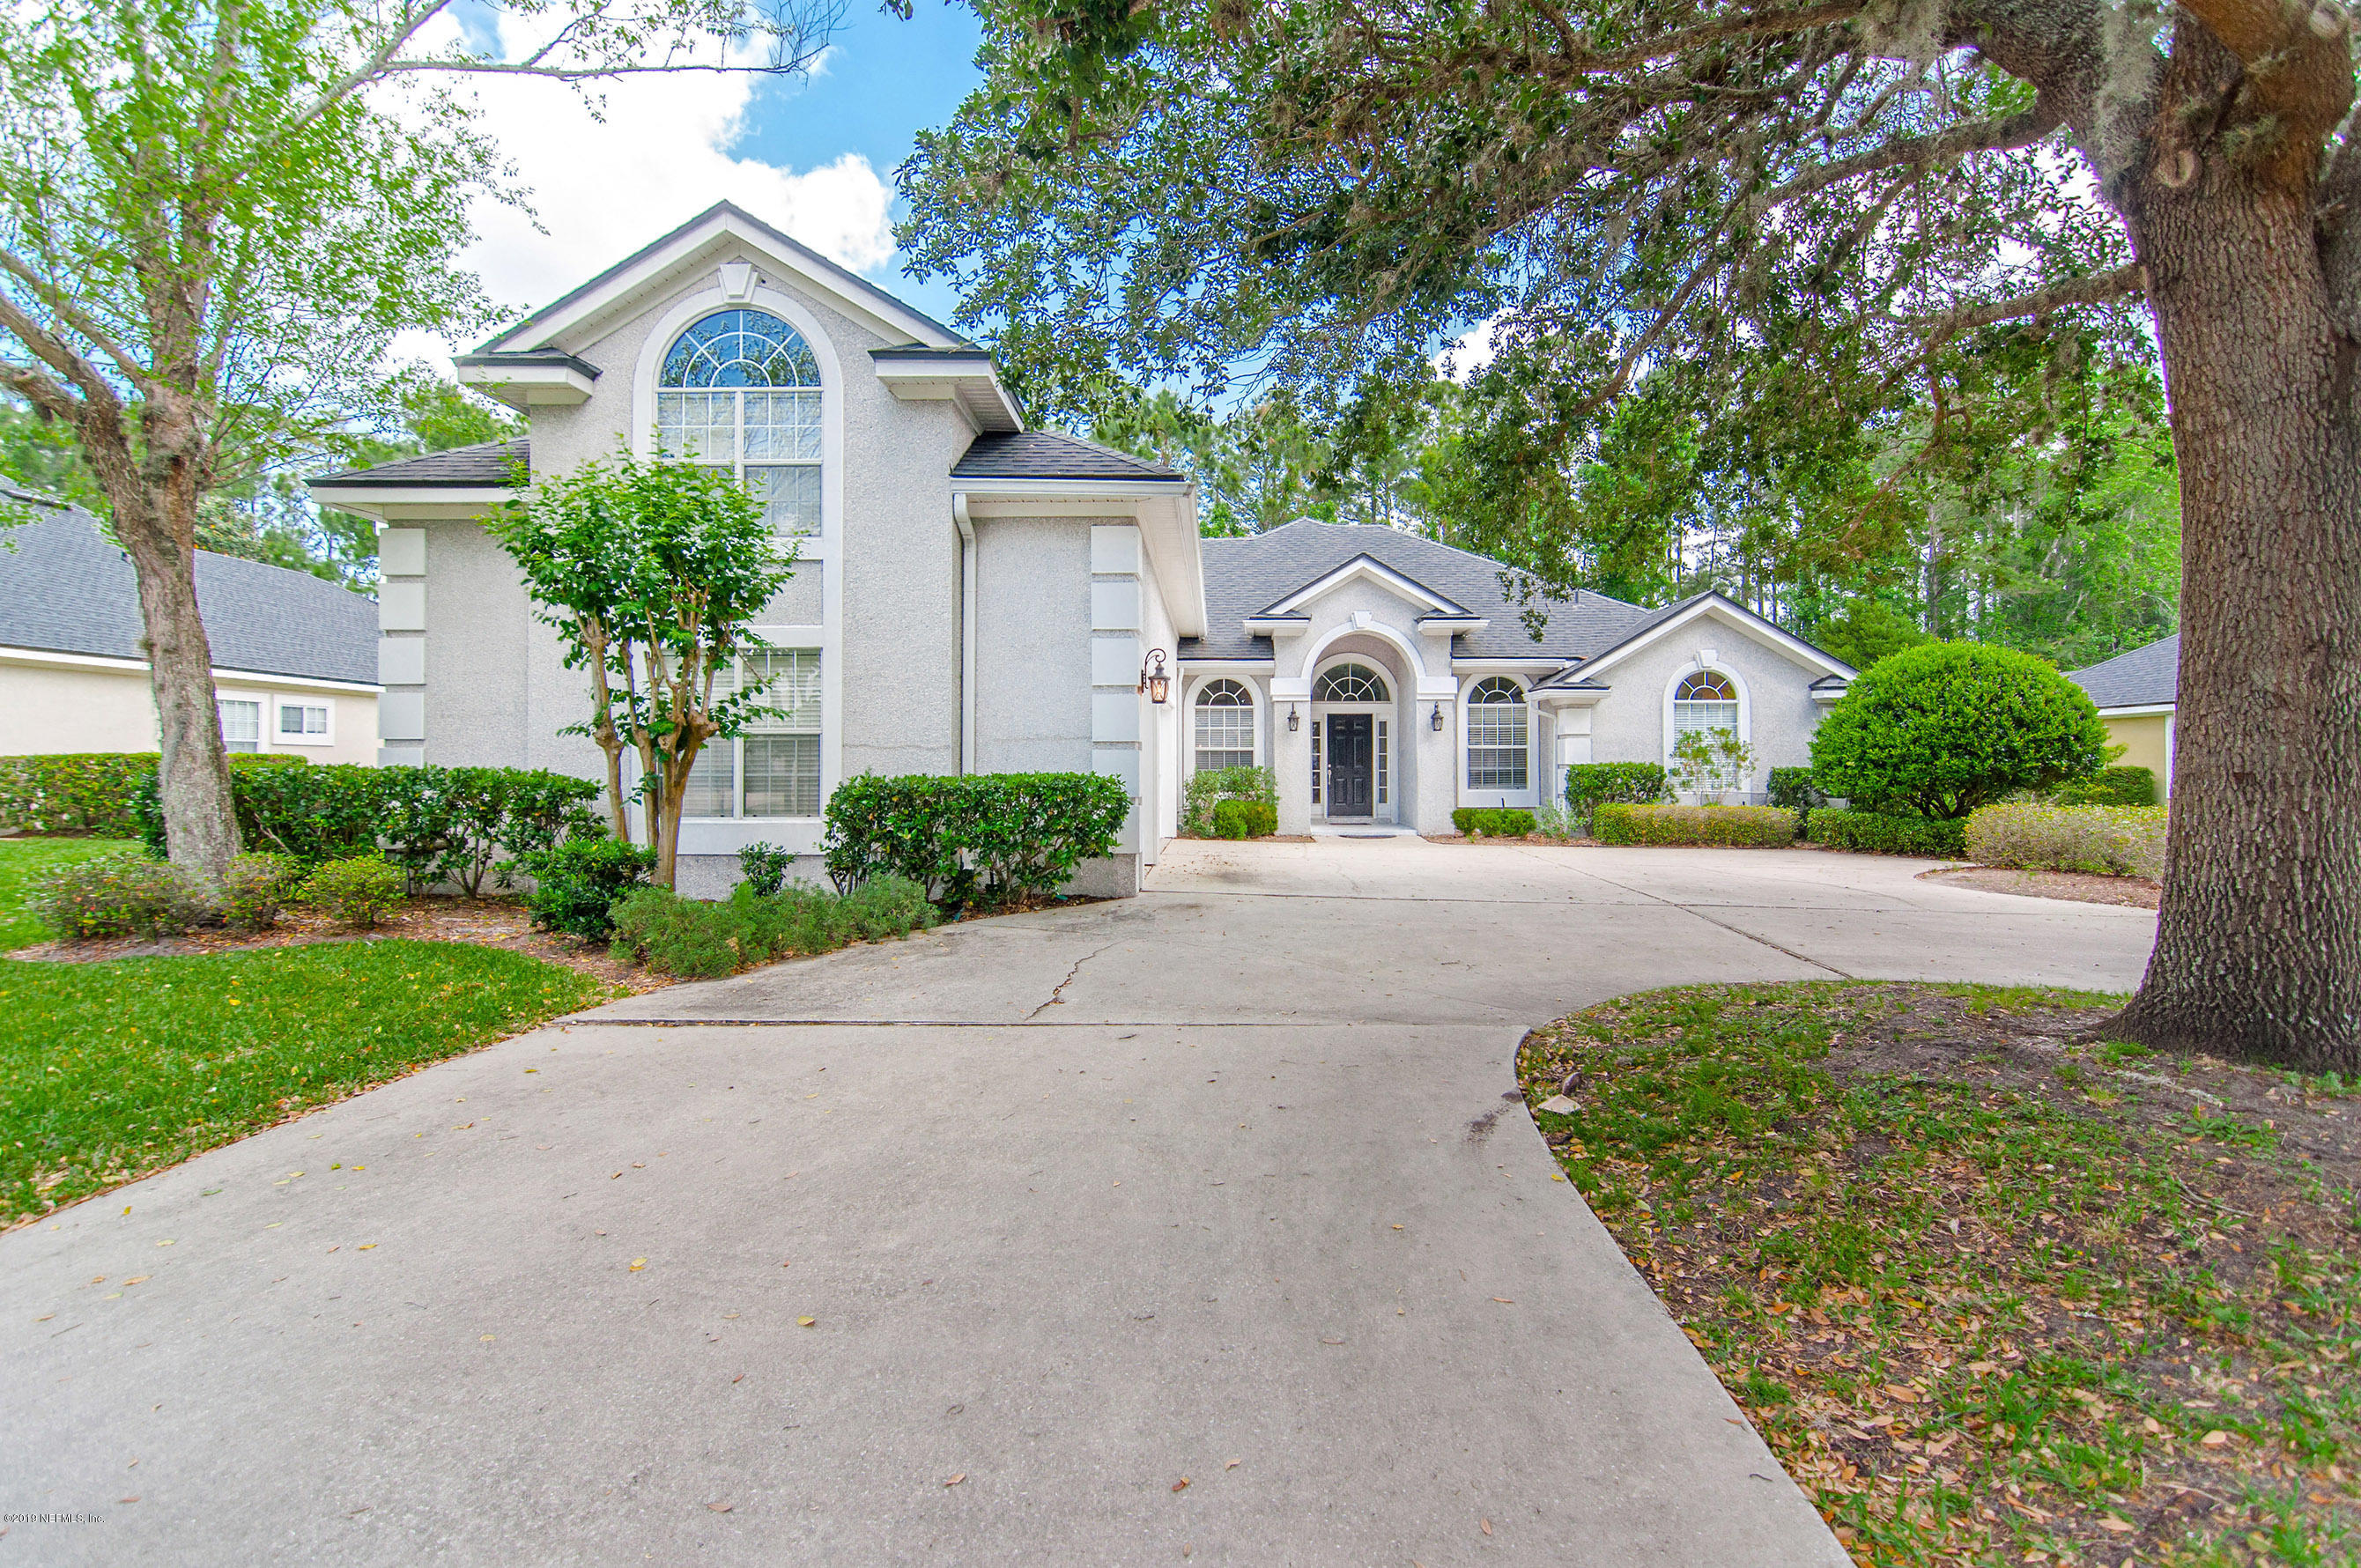 12755 HUNT CLUB, JACKSONVILLE, FLORIDA 32224, 4 Bedrooms Bedrooms, ,3 BathroomsBathrooms,Residential - single family,For sale,HUNT CLUB,996094